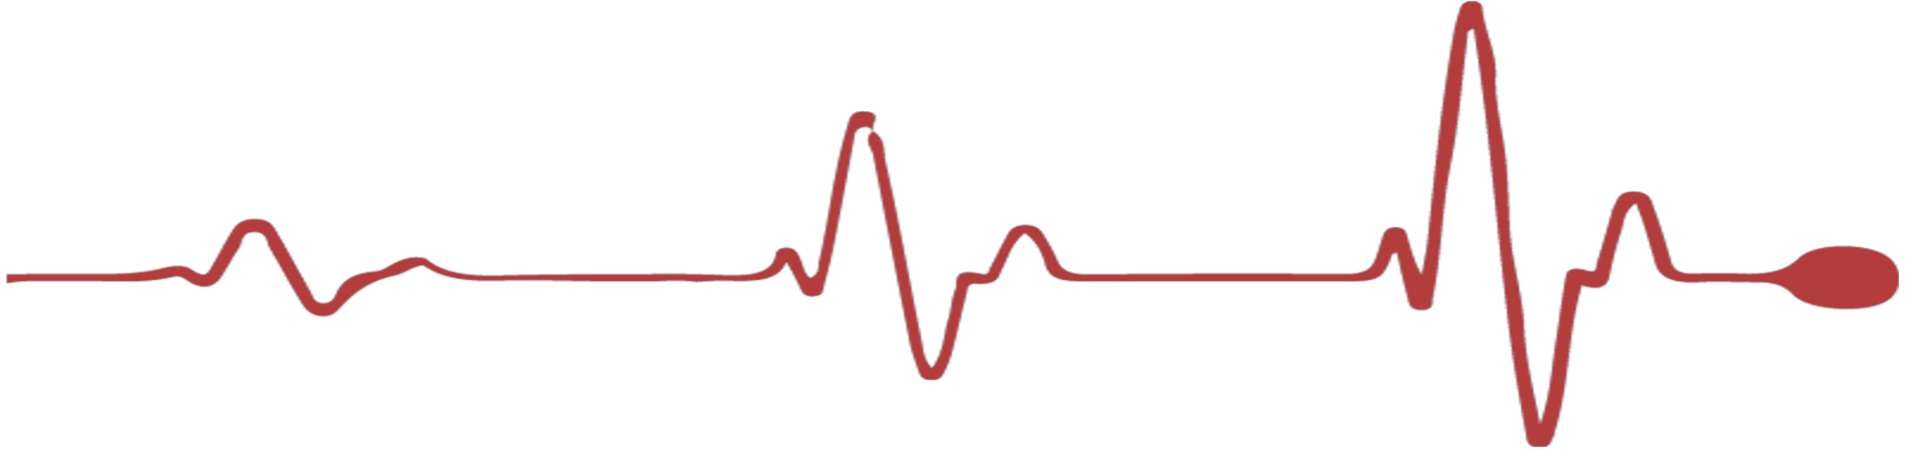 Heartbeat Png Transparent Black: Heartbeat Line Clipart Black And White Png 20 Free